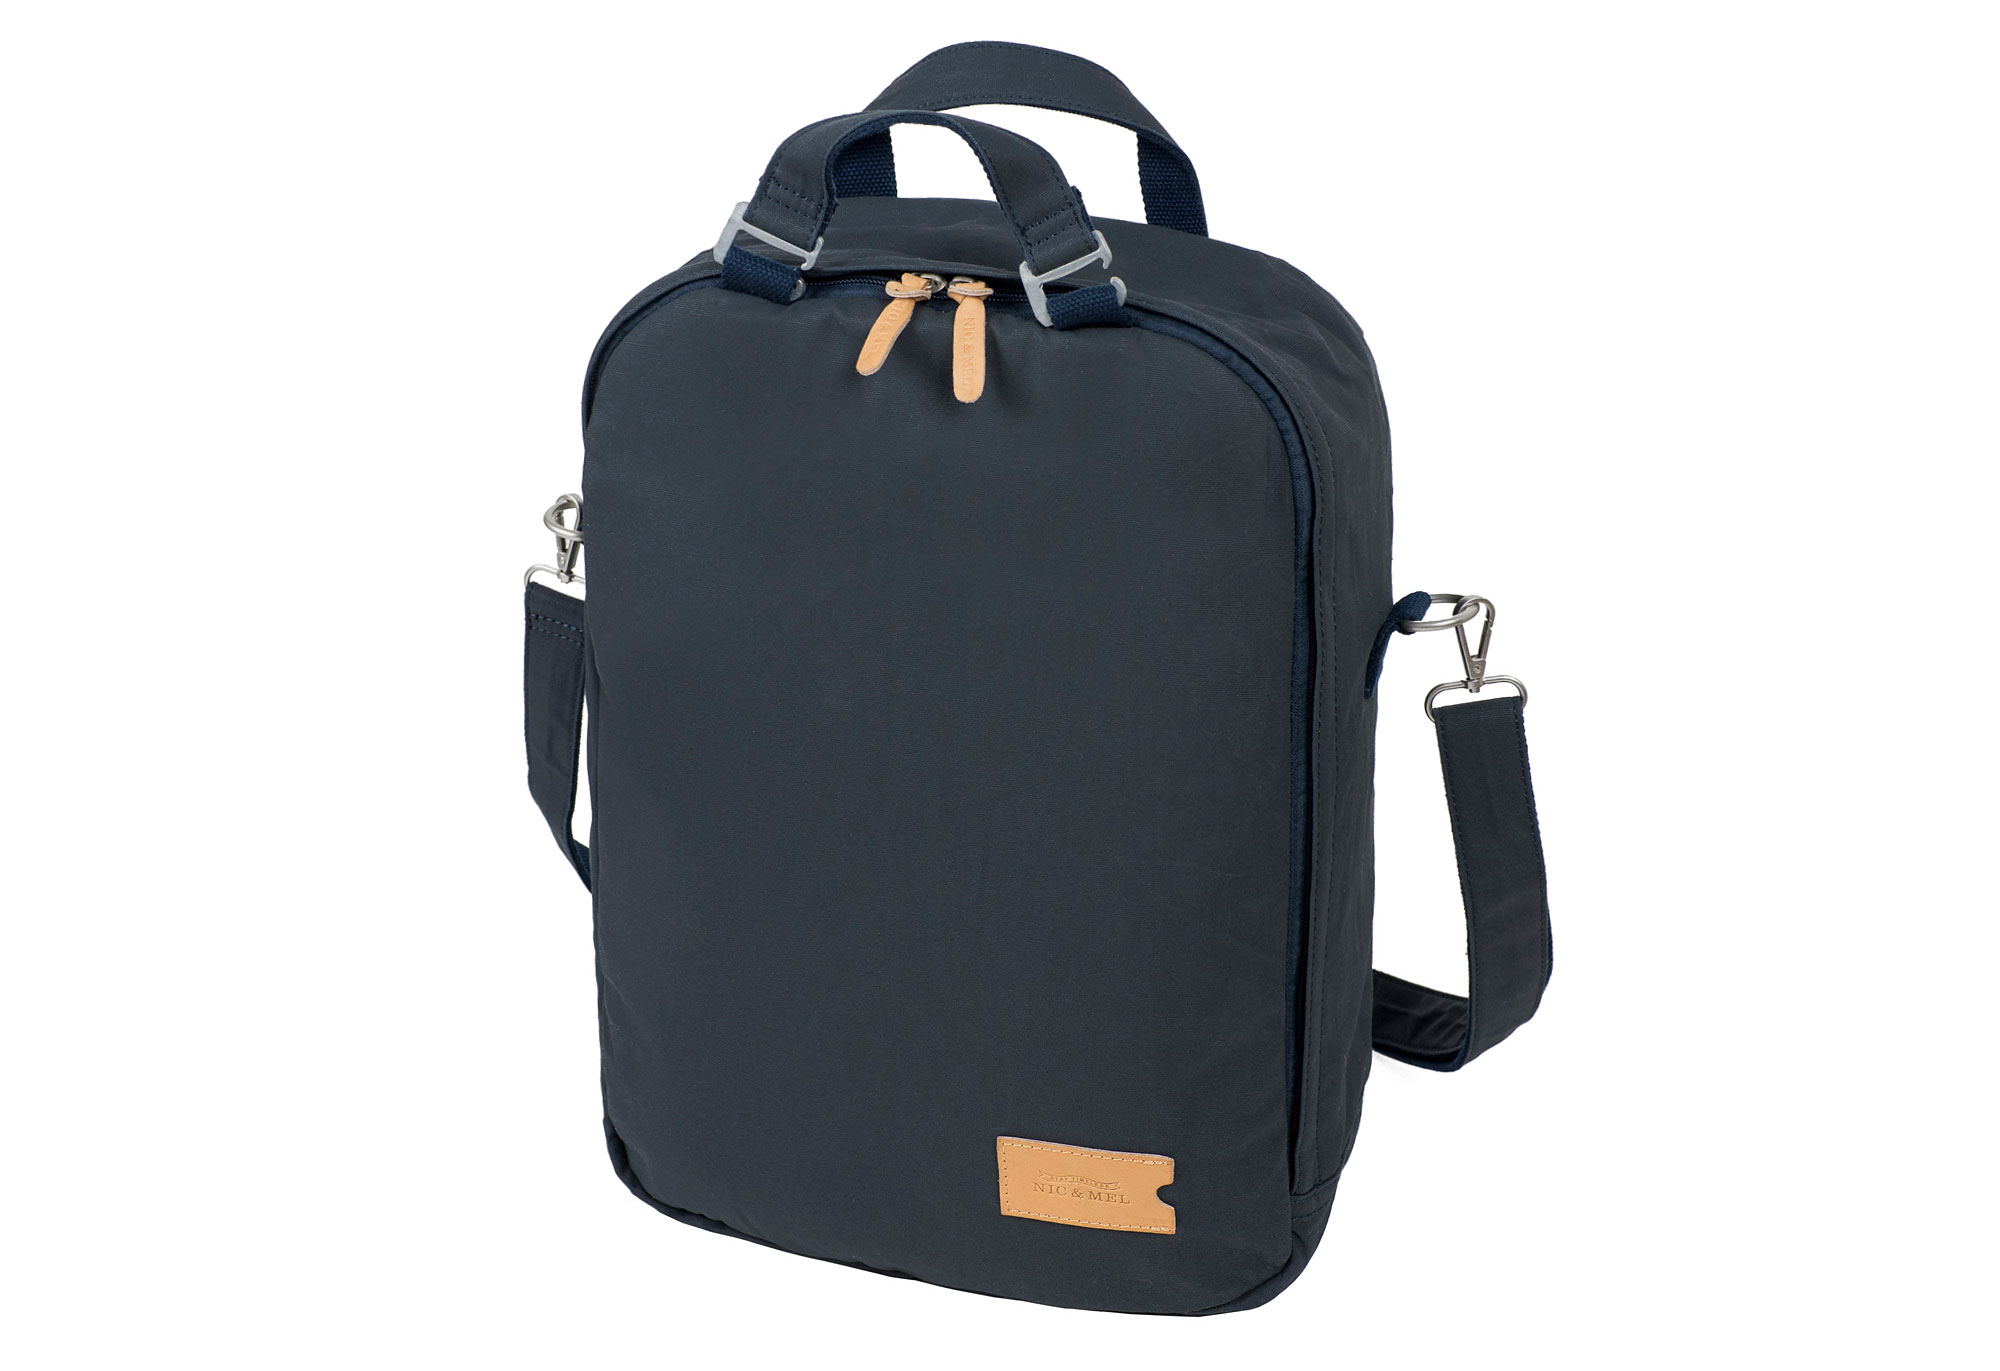 Carter-daypack-front-perspective